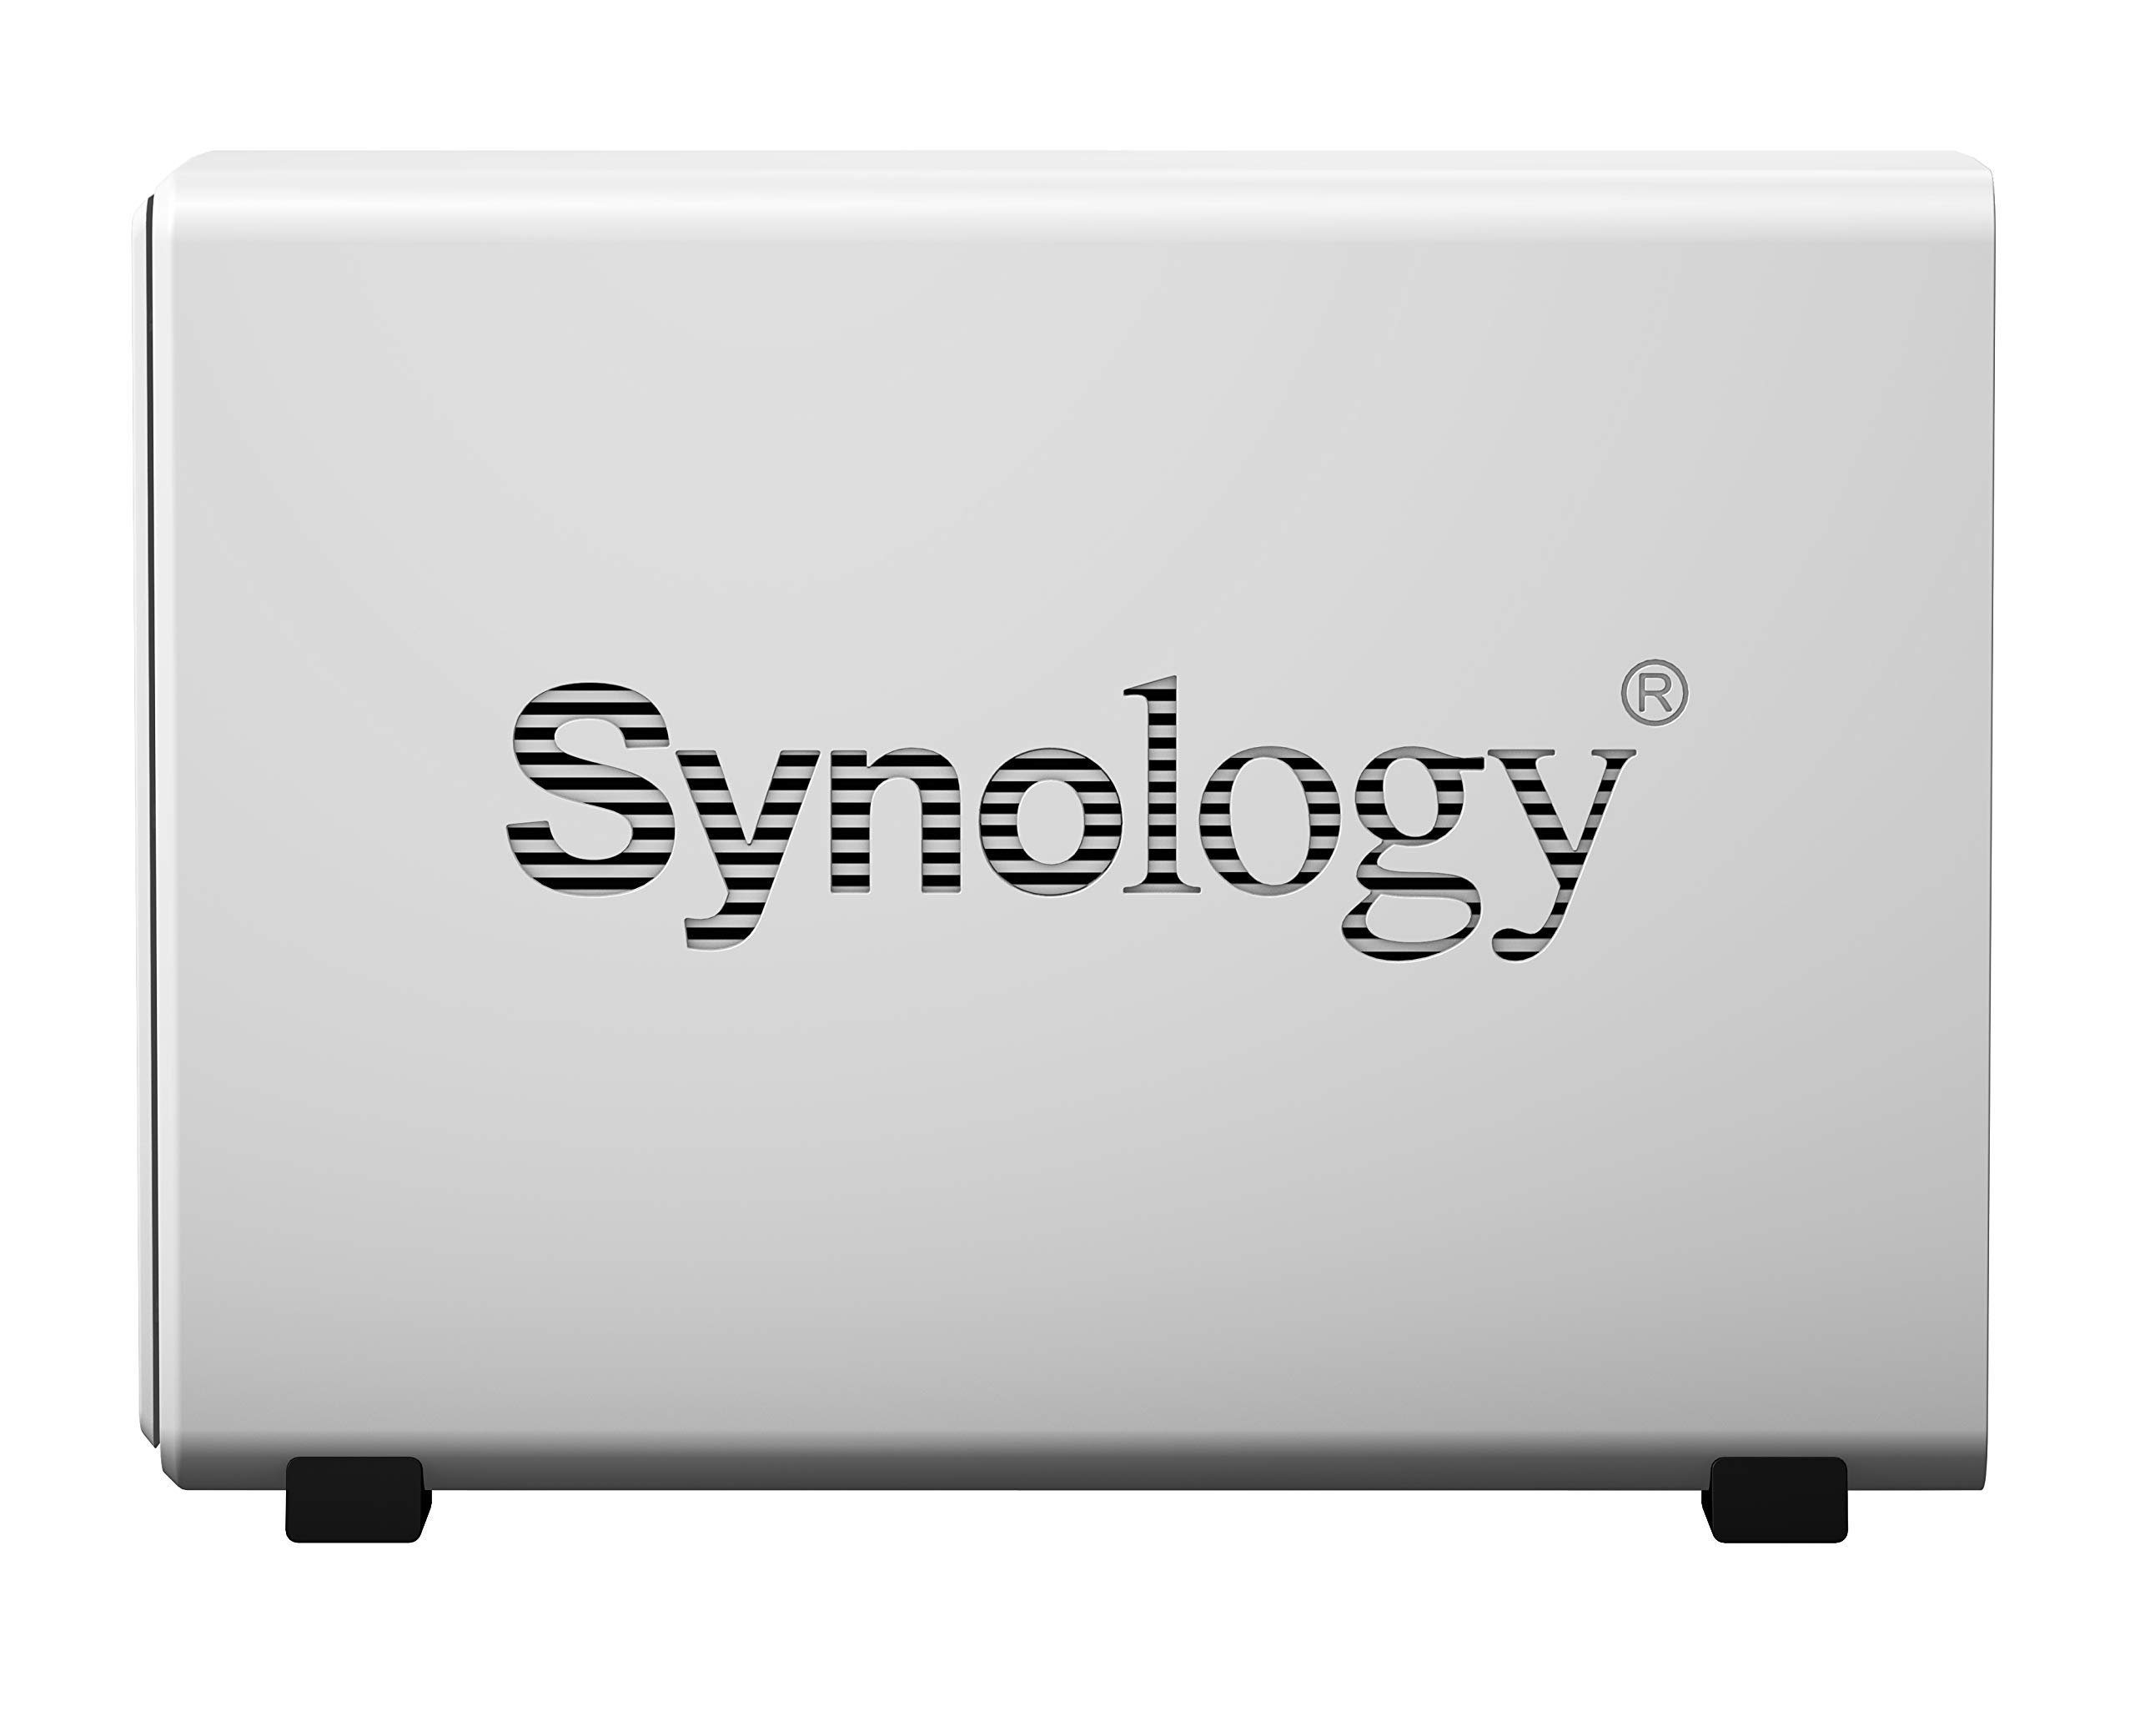 Synology Disk Station 2-Bay Diskless Network Attached Storage (DS216se) (Certified Refurbished) 5 This Certified Refurbished product is tested and certified to look and work like new. The refurbishing process includes functionality testing, basic cleaning, inspection, and repackaging. The product ships with all relevant accessories, a minimum 90-day warranty, and may arrive in a generic box. Only select sellers who maintain a high performance bar may offer Certified Refurbished products on Amazon.com CPU Model : Marvell Armada 385 88F6820 Noise Level 20.6 dB(A)